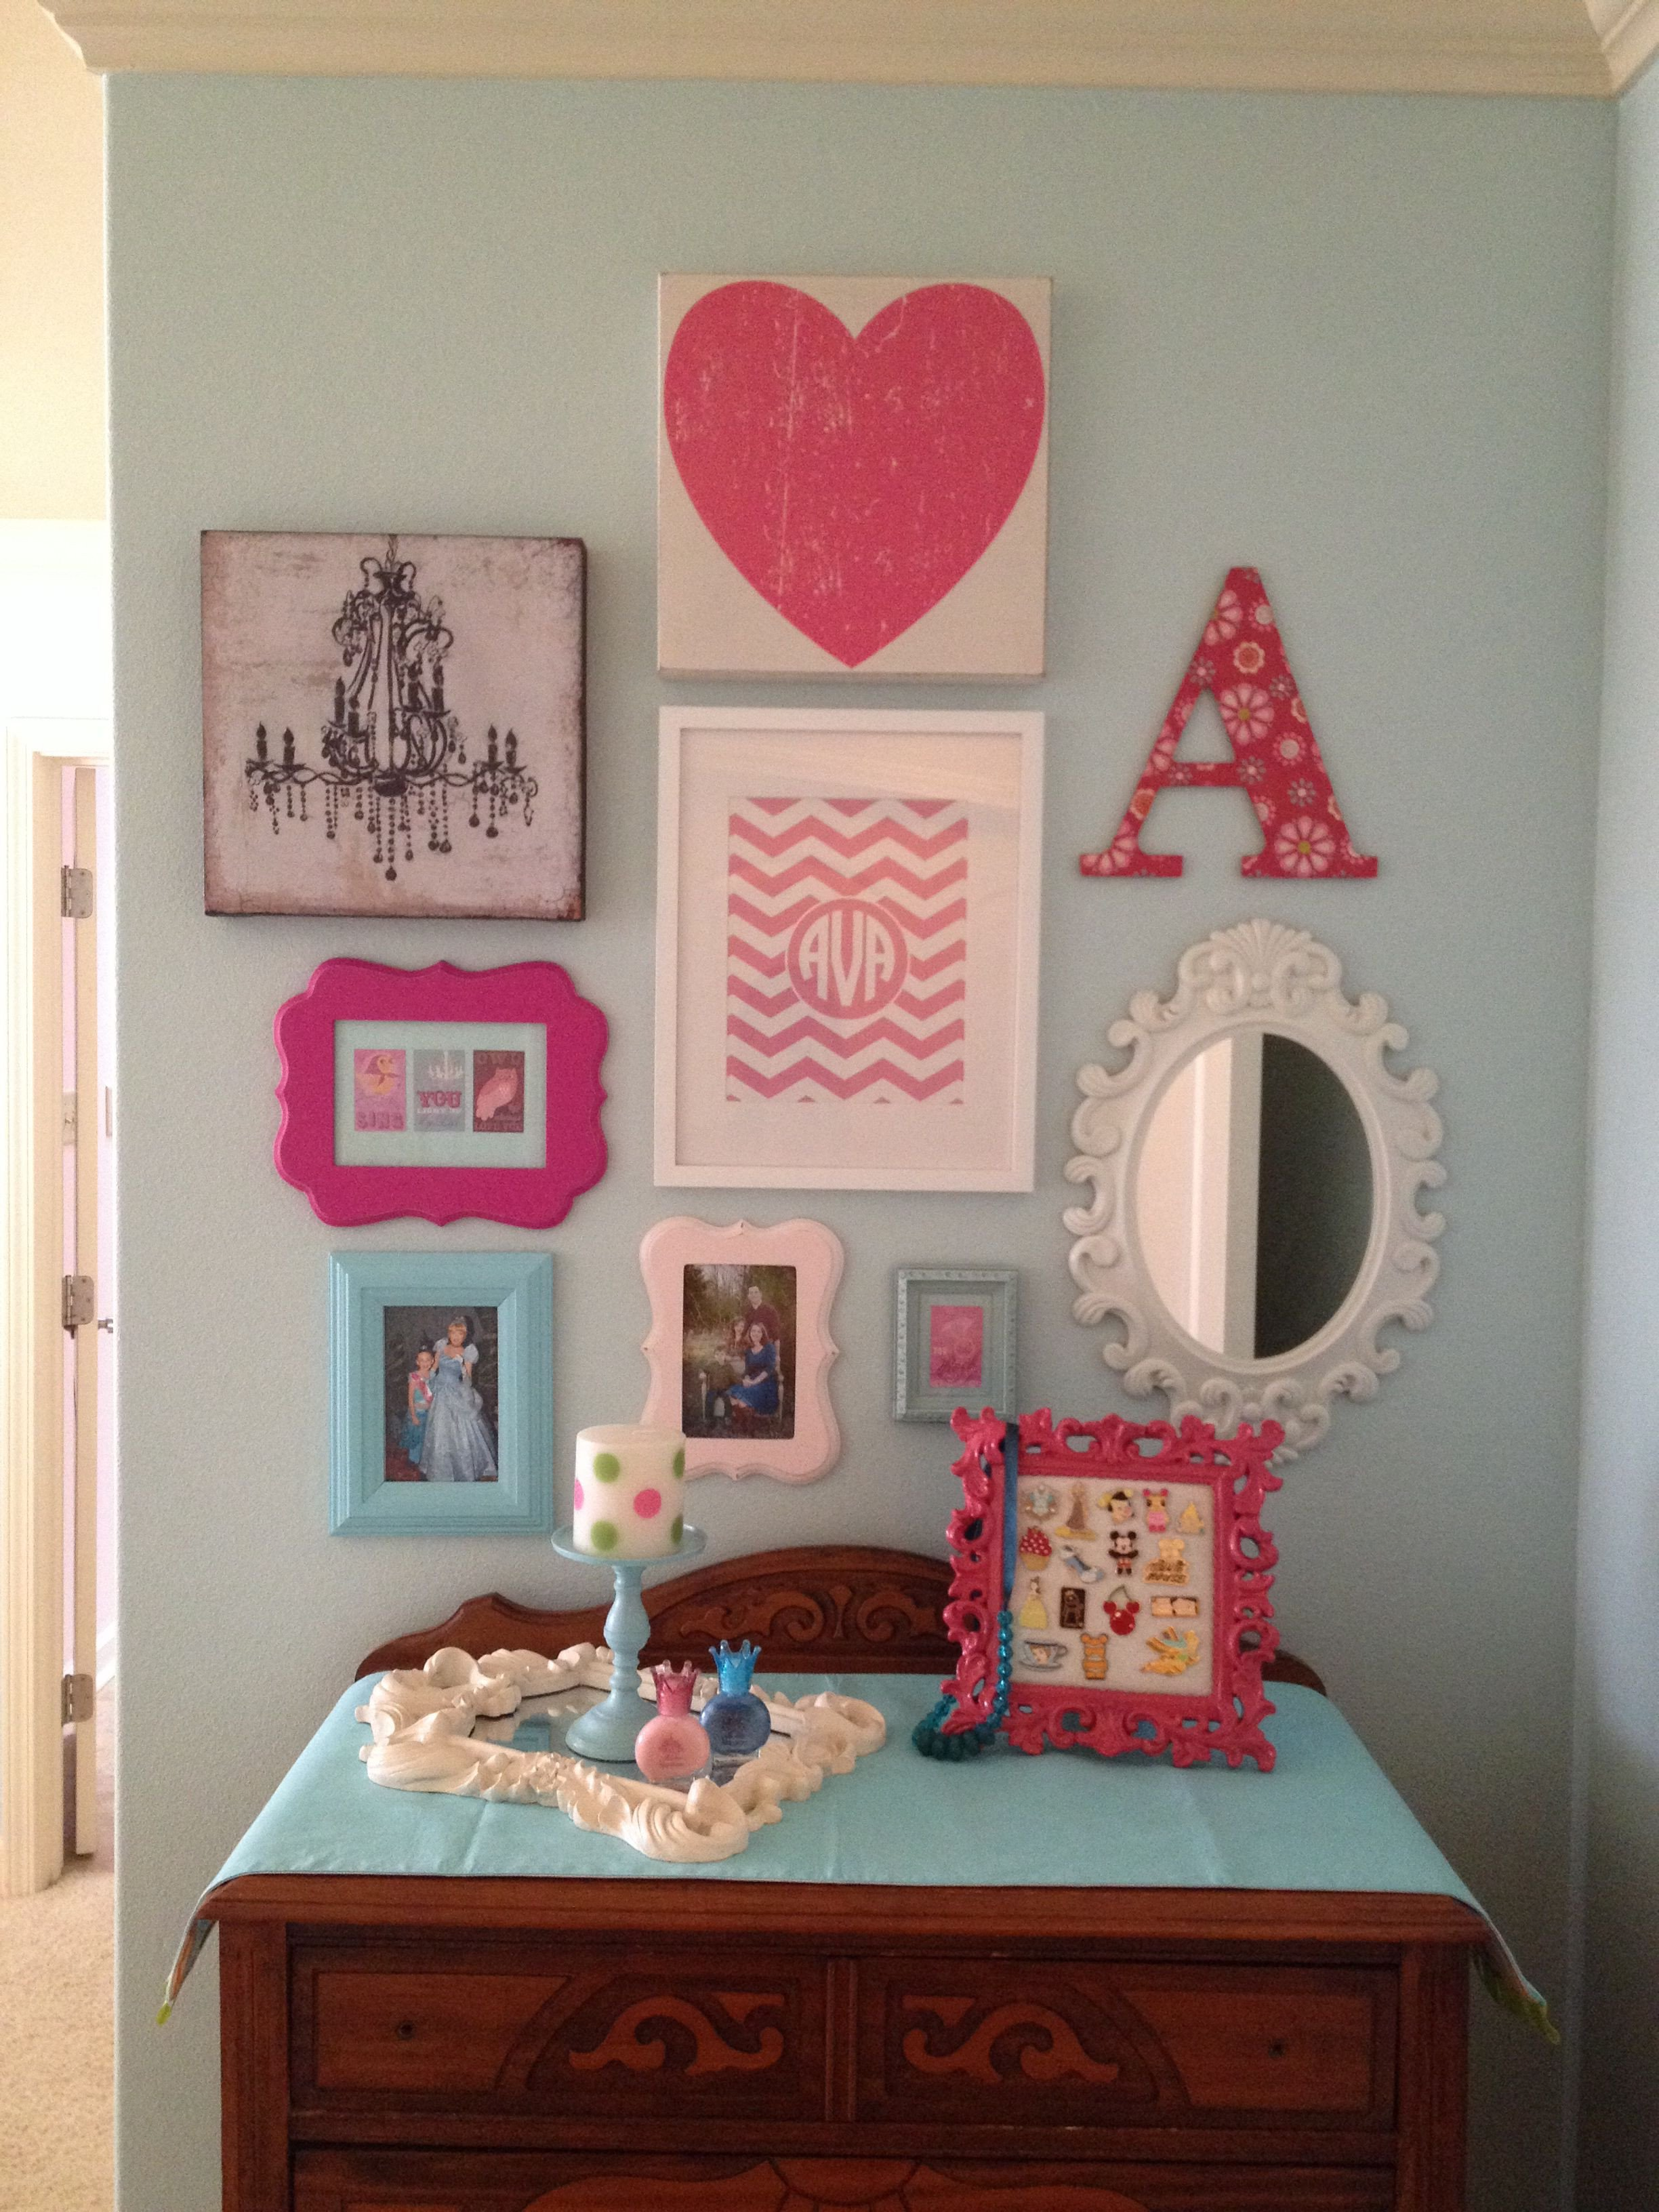 Wall Decorating Ideas for Bedroom Unique Girls Room Gallery Wall